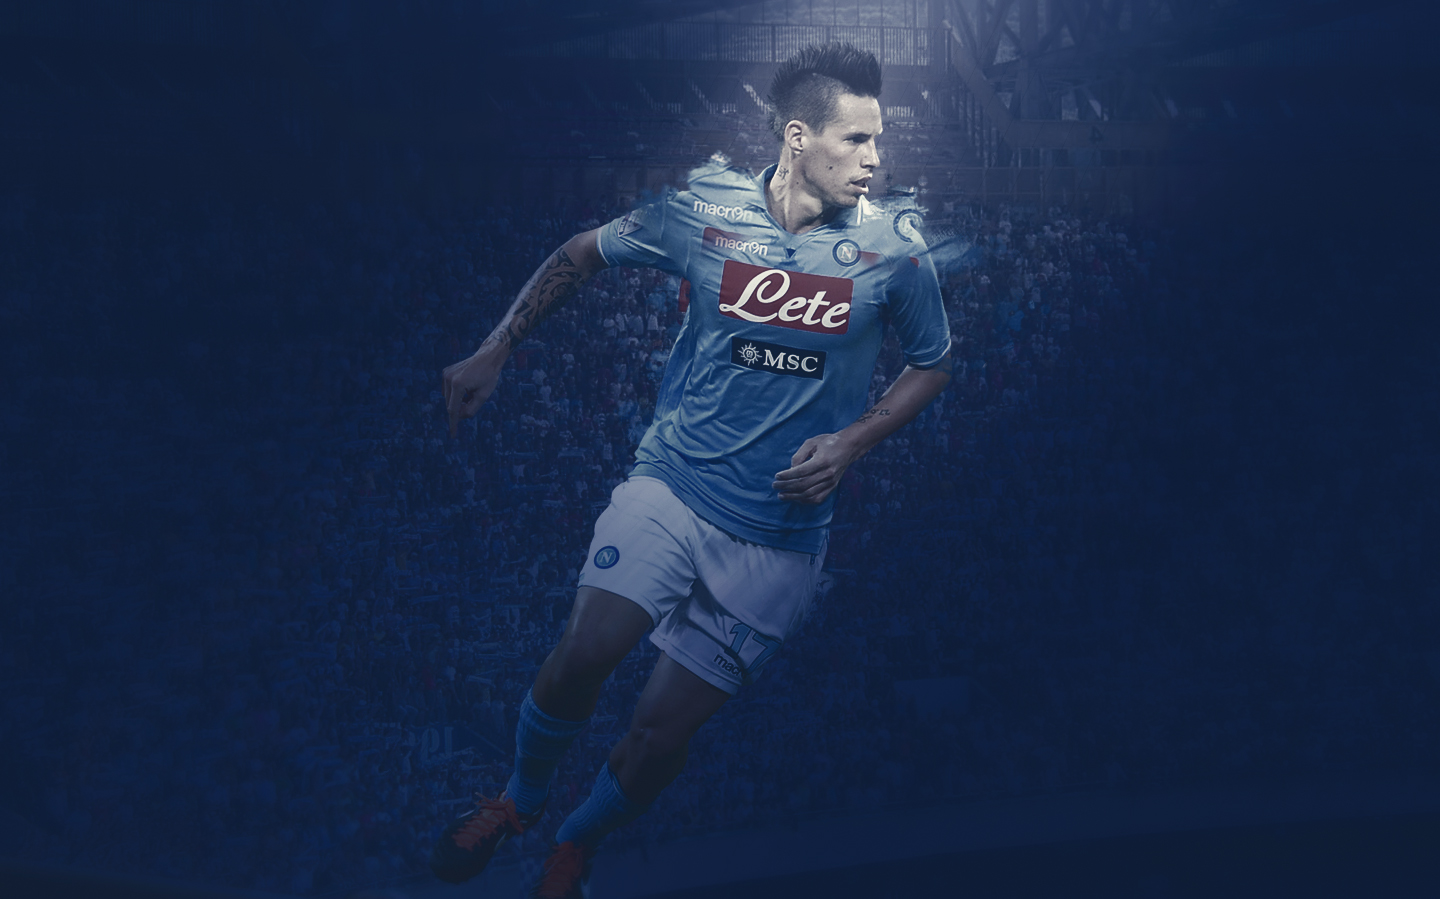 Marek Hamsik background by darth me on DeviantArt